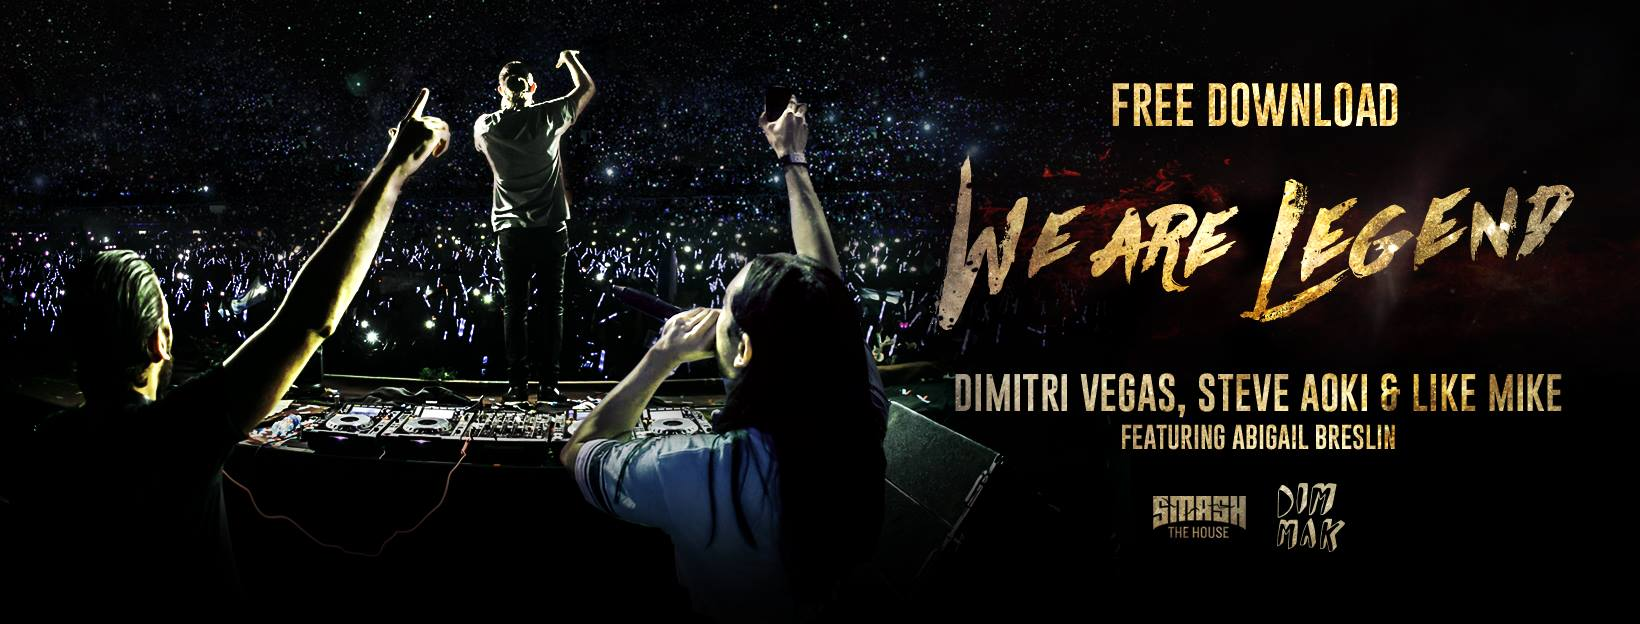 Dimitri Vegas & Like Mike vs. Steve Aoki ft Abigail Breslin – We Are Legend [Free Download]26171972 1634275666627464 6421091798932181667 O